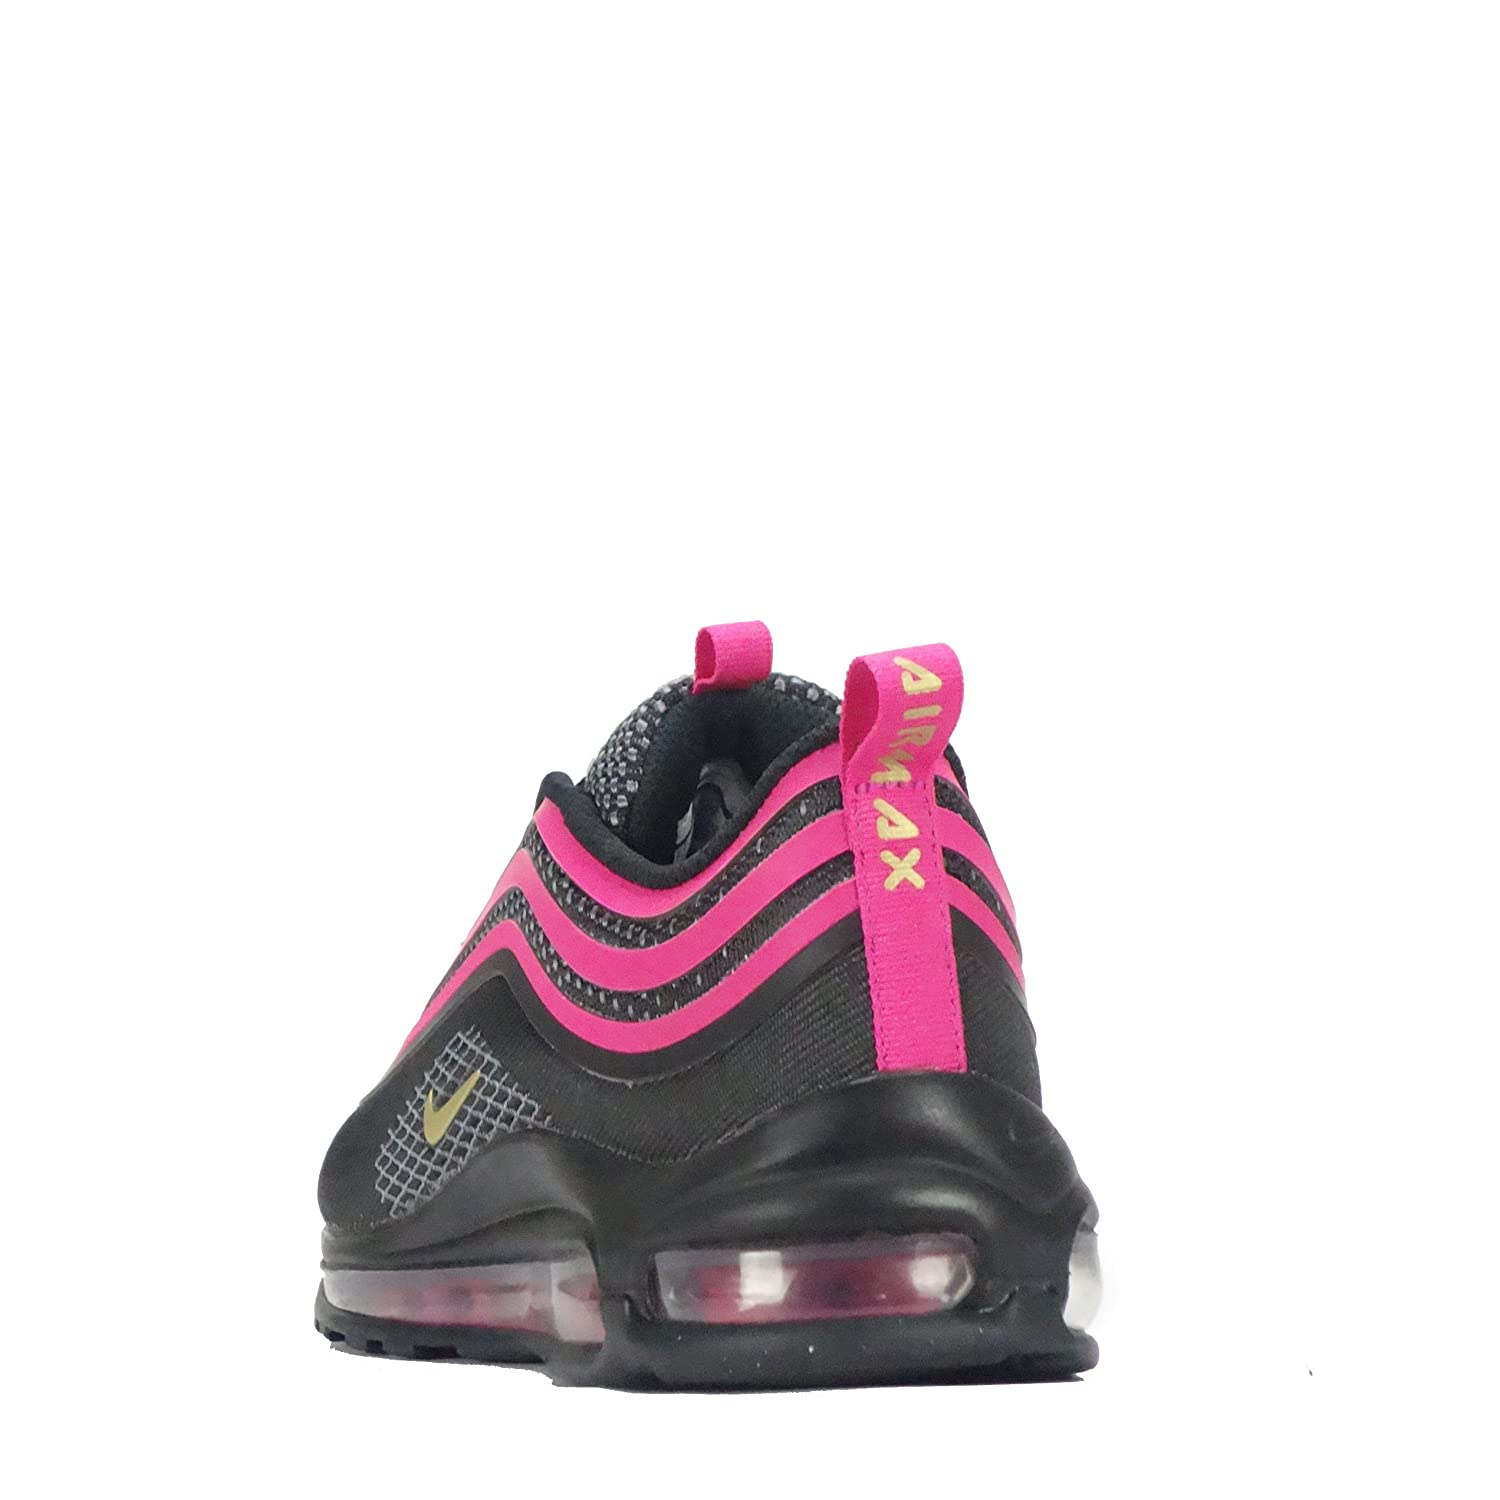 6c14e48fe1a5d5 Nike Air Max 97 Ultra Junior Youth Unisex Shoes  Amazon.co.uk  Shoes   Bags